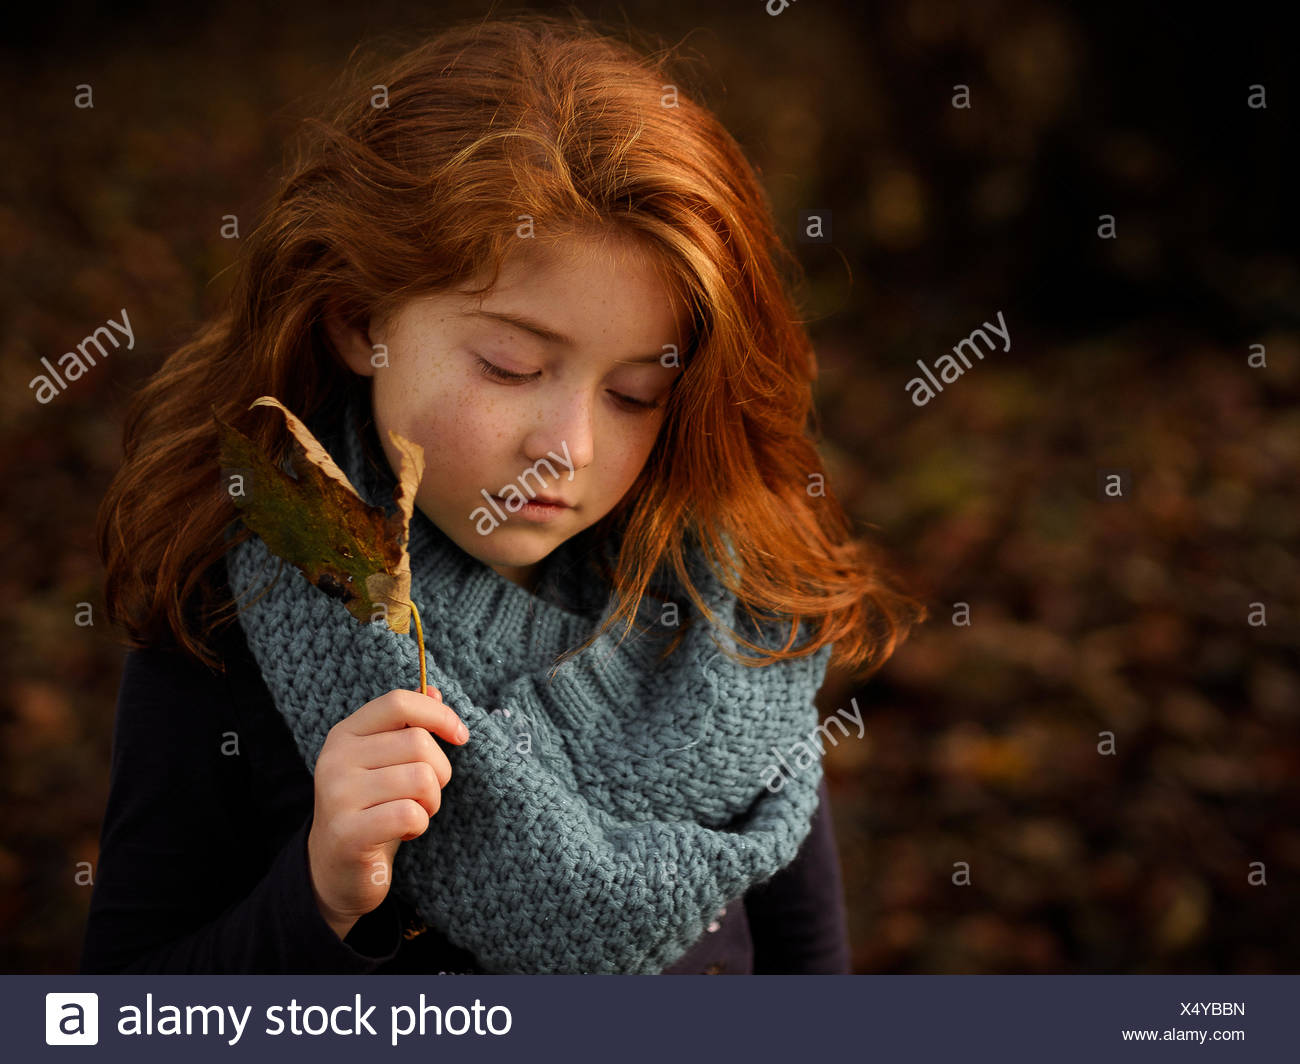 Red haired girl holding autumn leaf Photo Stock